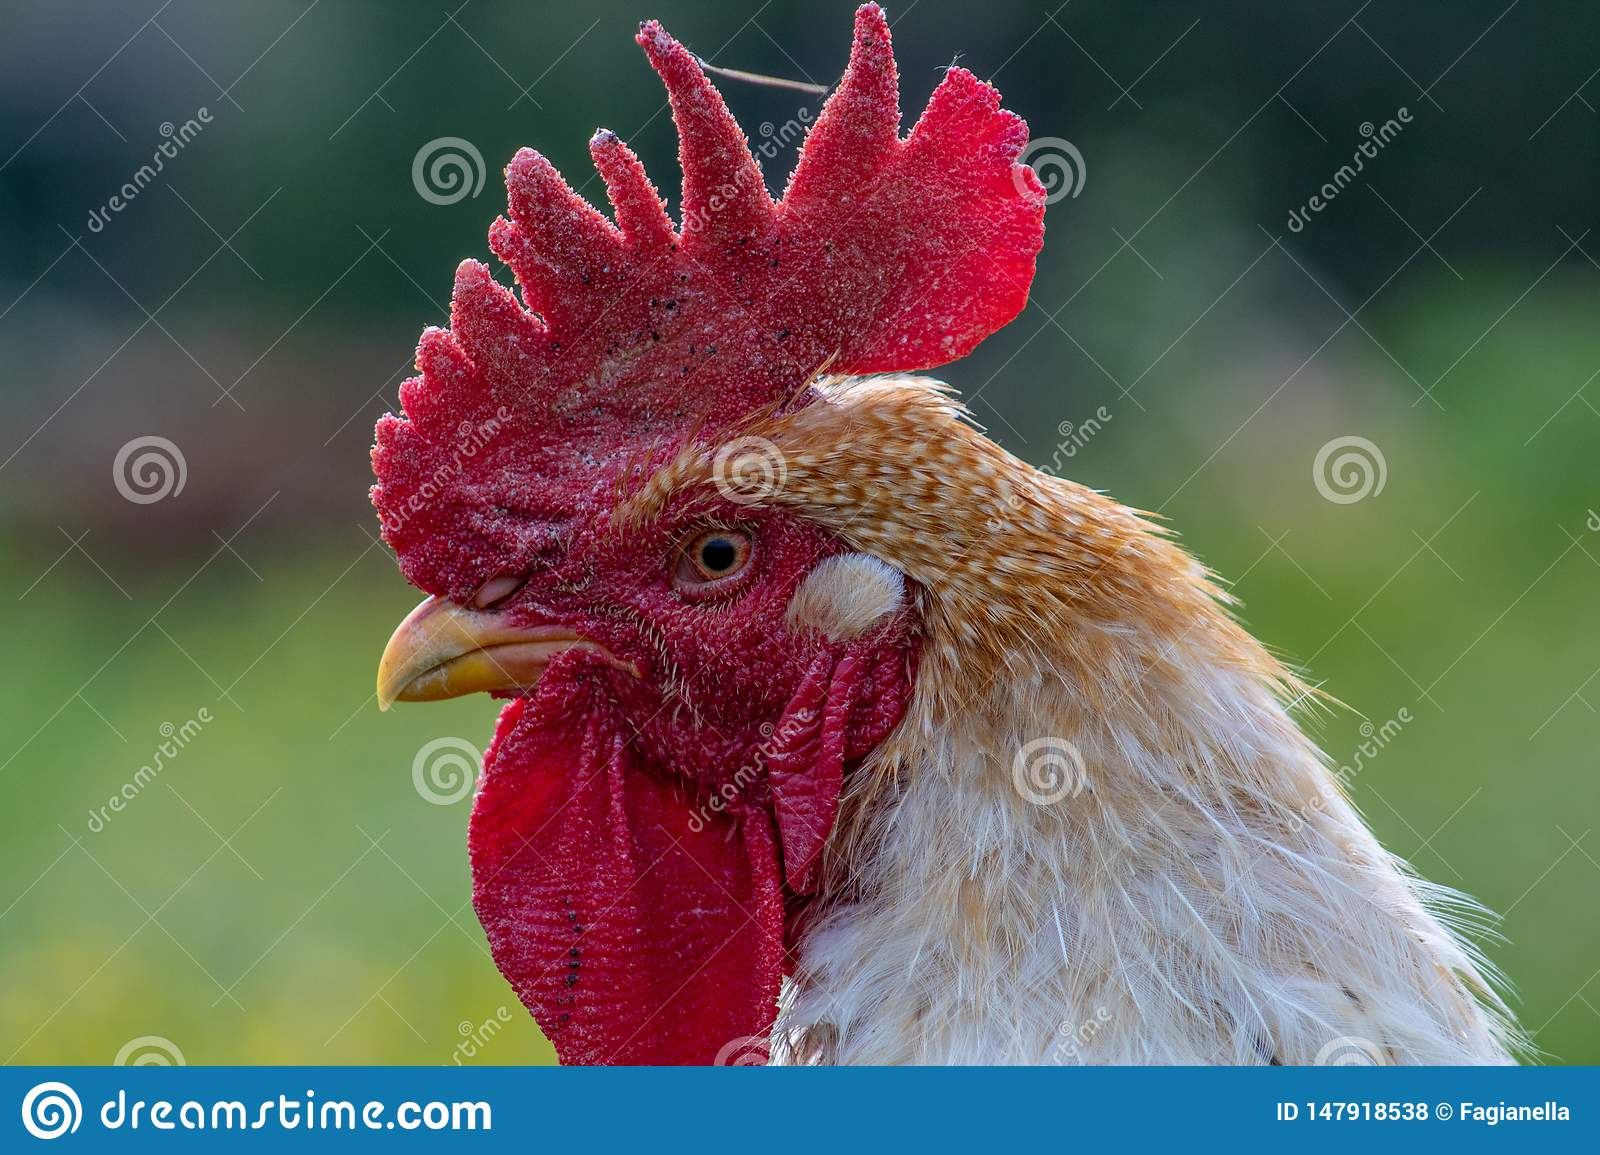 Free range chicken, happily roaming and pecking in a field. Farm life, italian country house